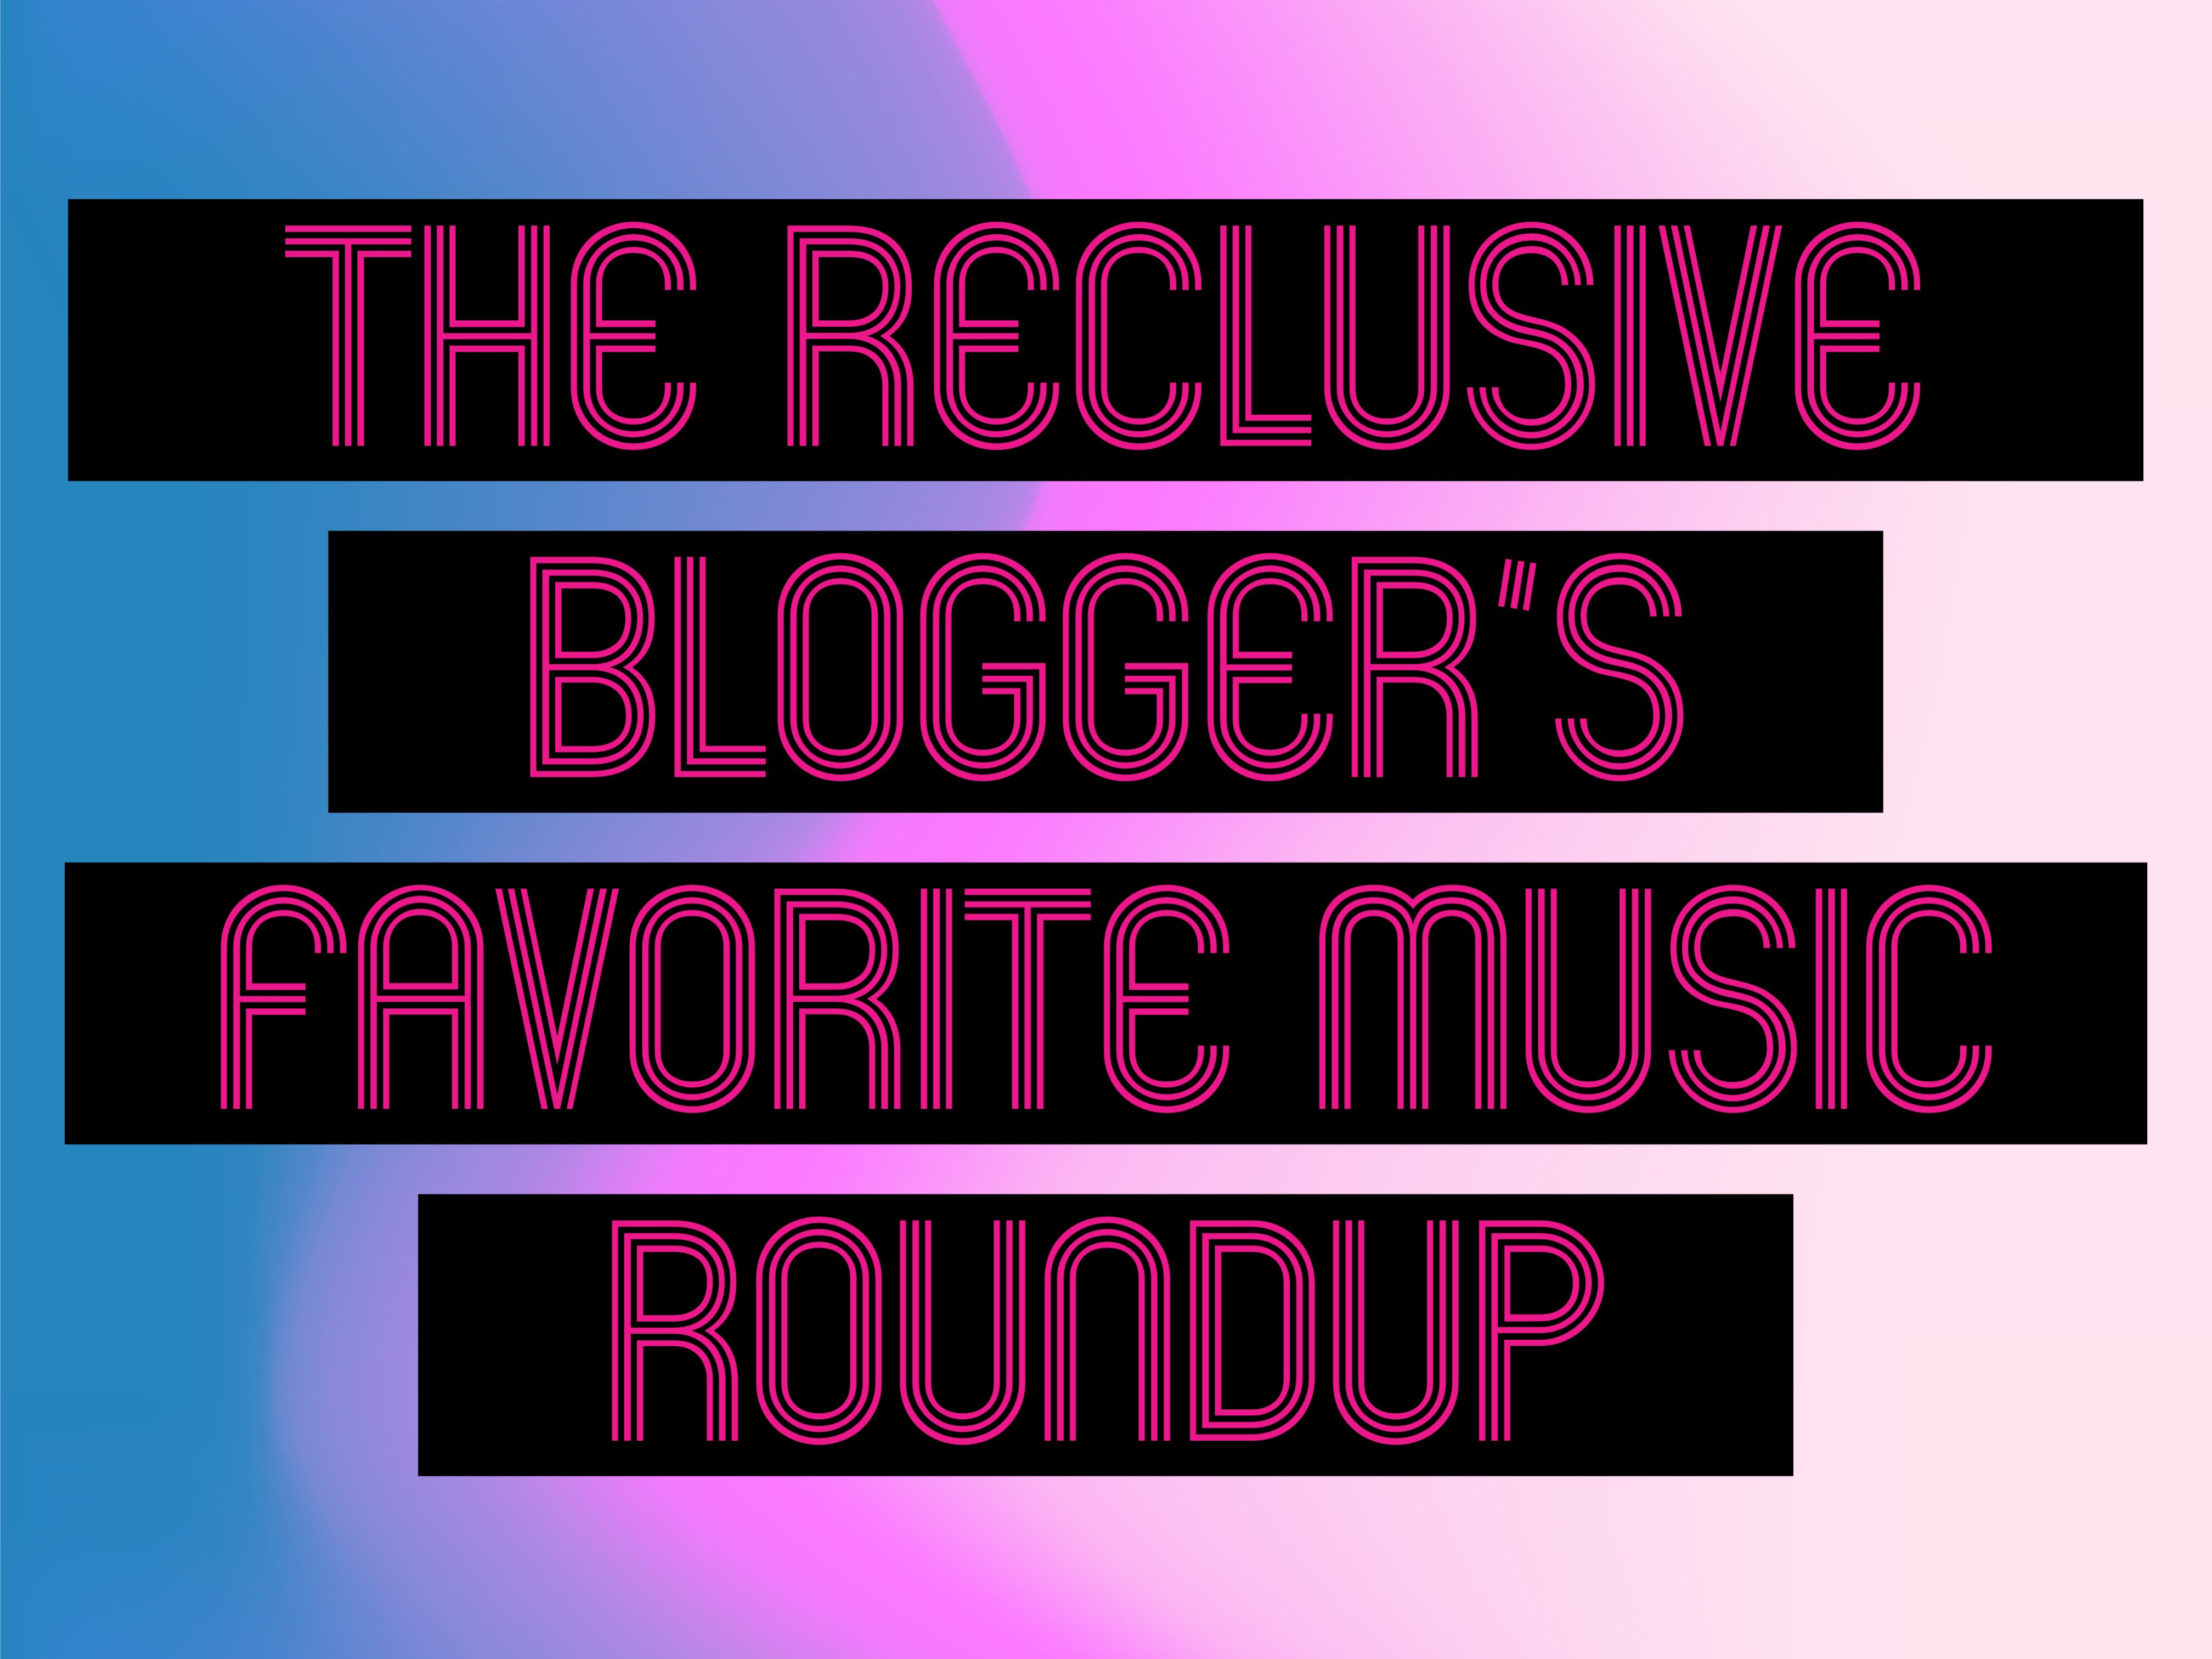 THE RECLUSIVE BLOGGER'S FAVORITE MUSIC ROUNDUP VOL. 1